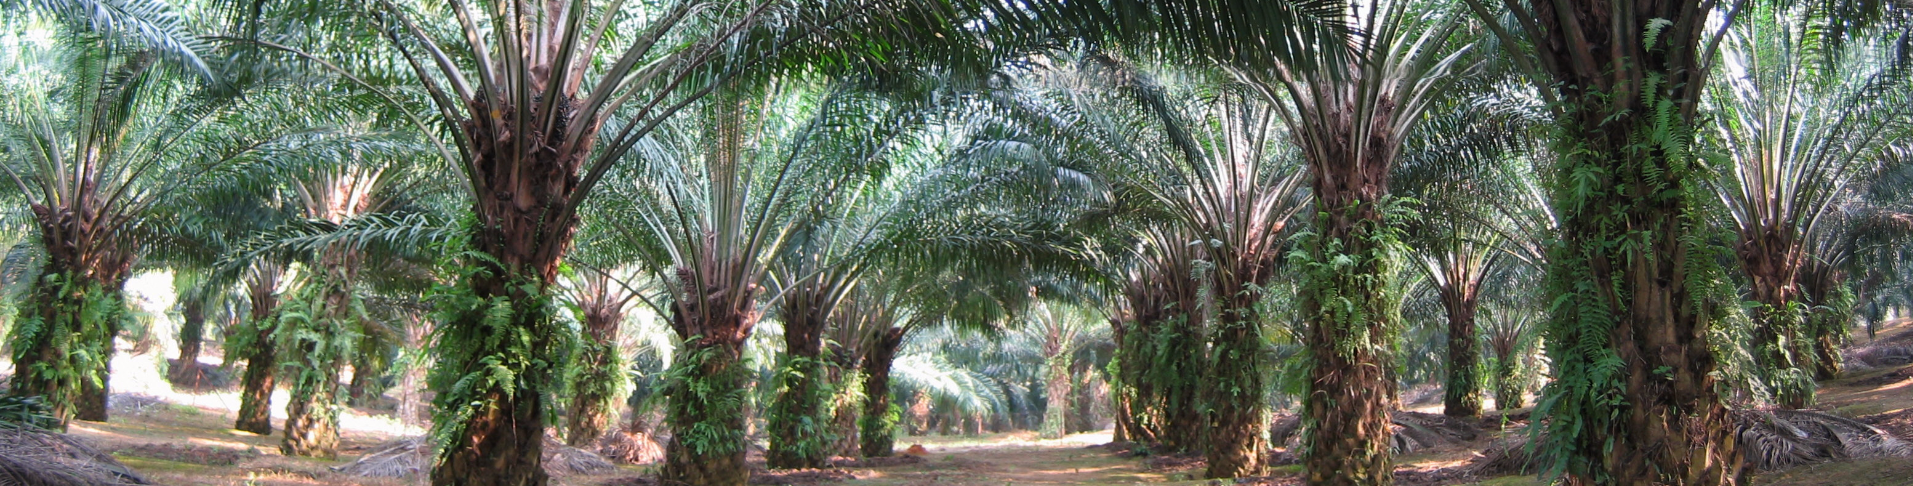 Oil-Palm-Trees_edited_edited.jpg